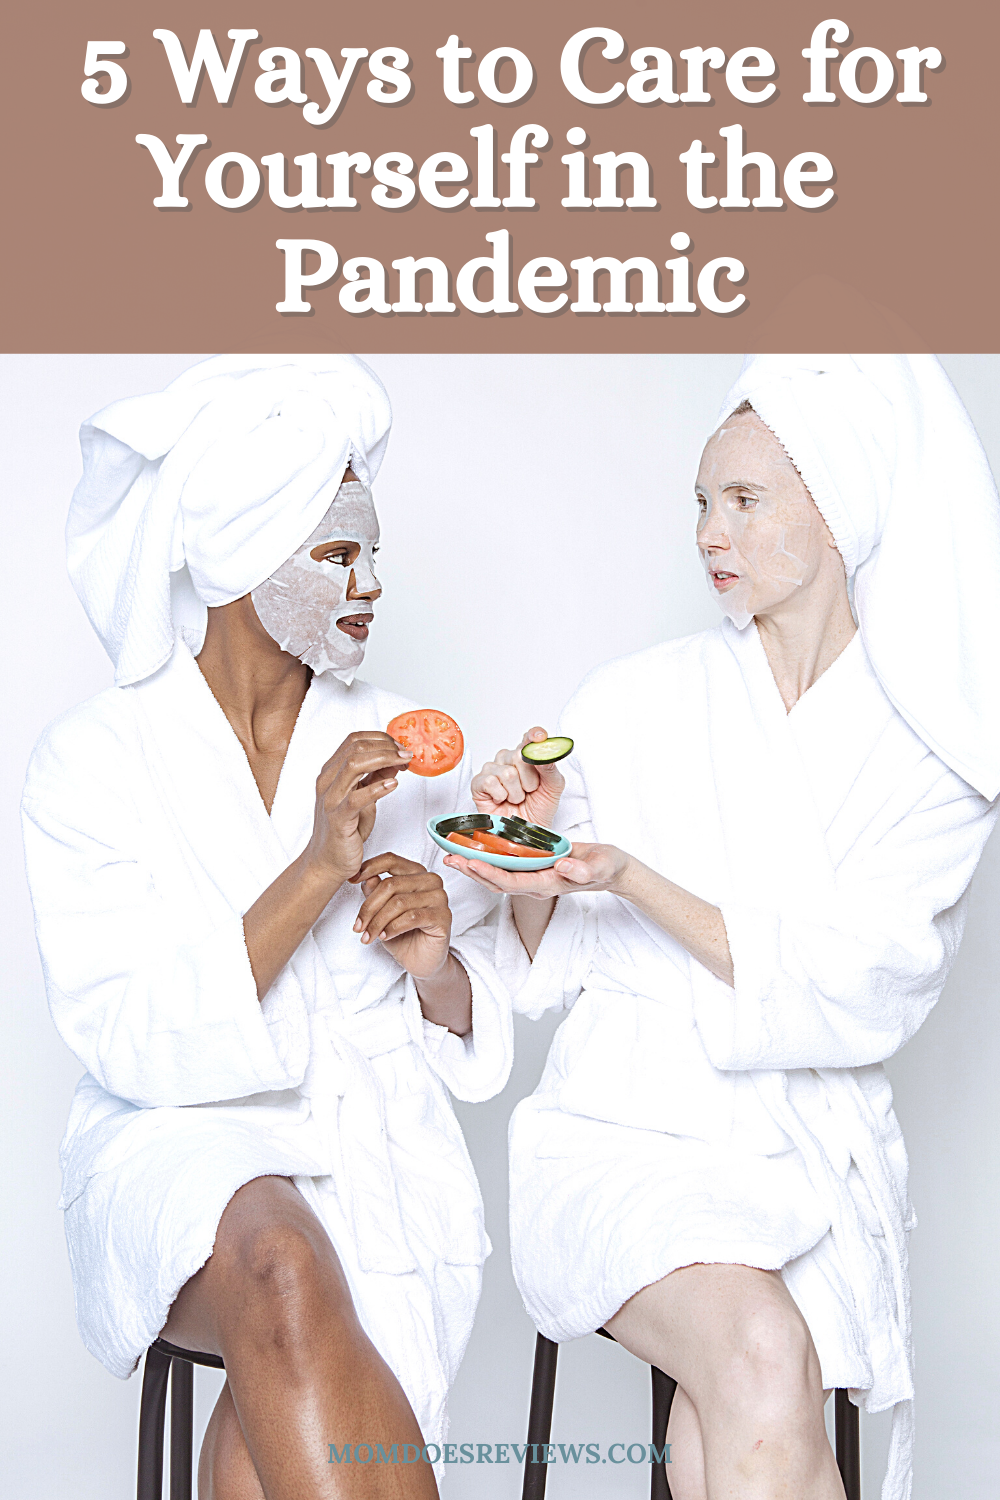 5 Ways to Care for Yourself in the Era of a Pandemic